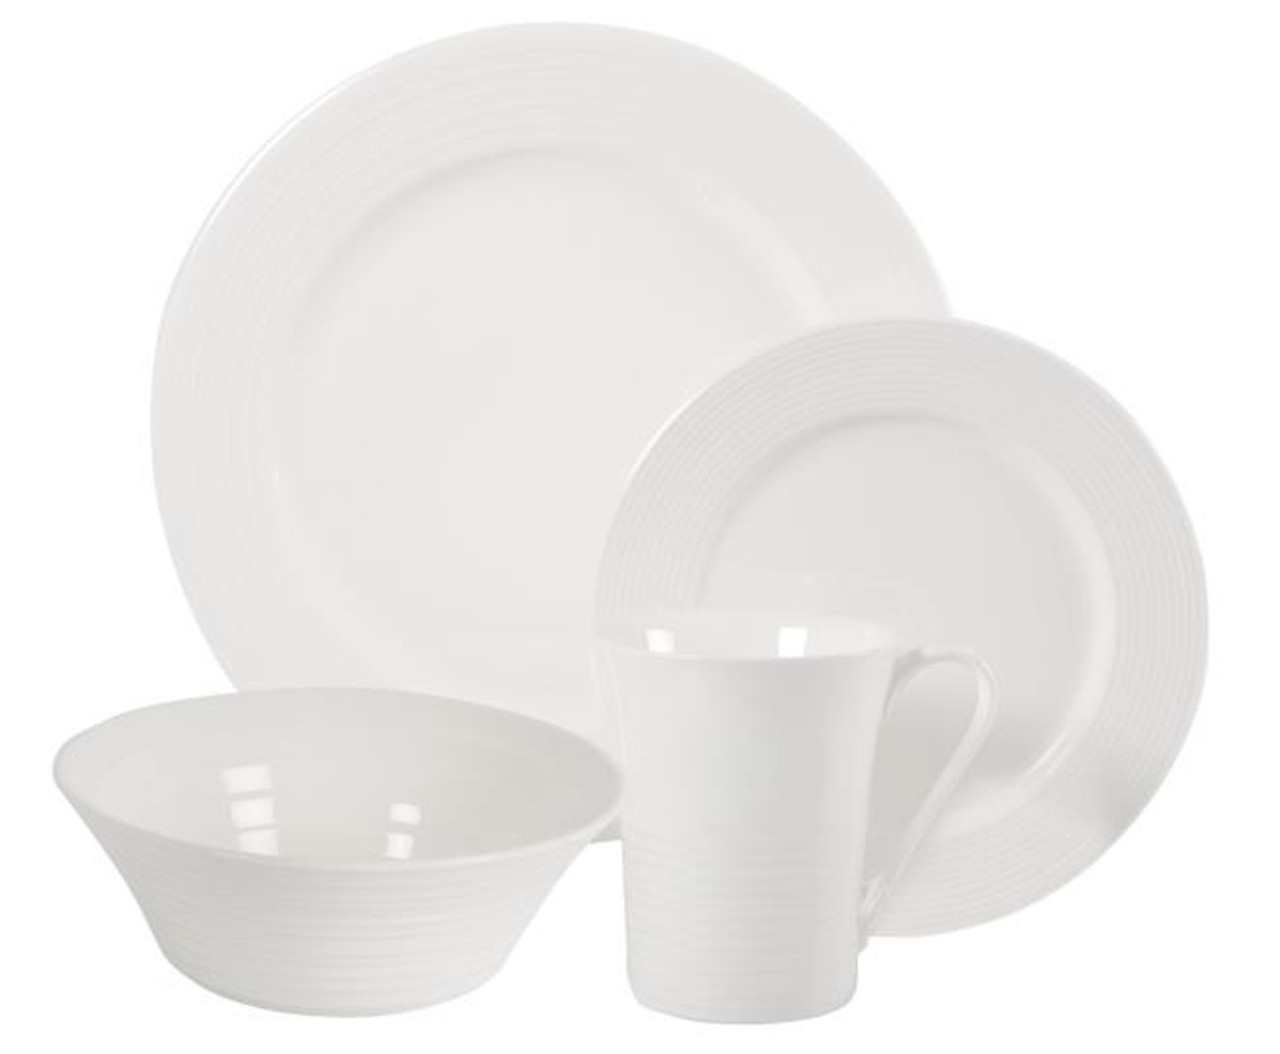 DINNER SET - CIRQUE - 16 PIECES